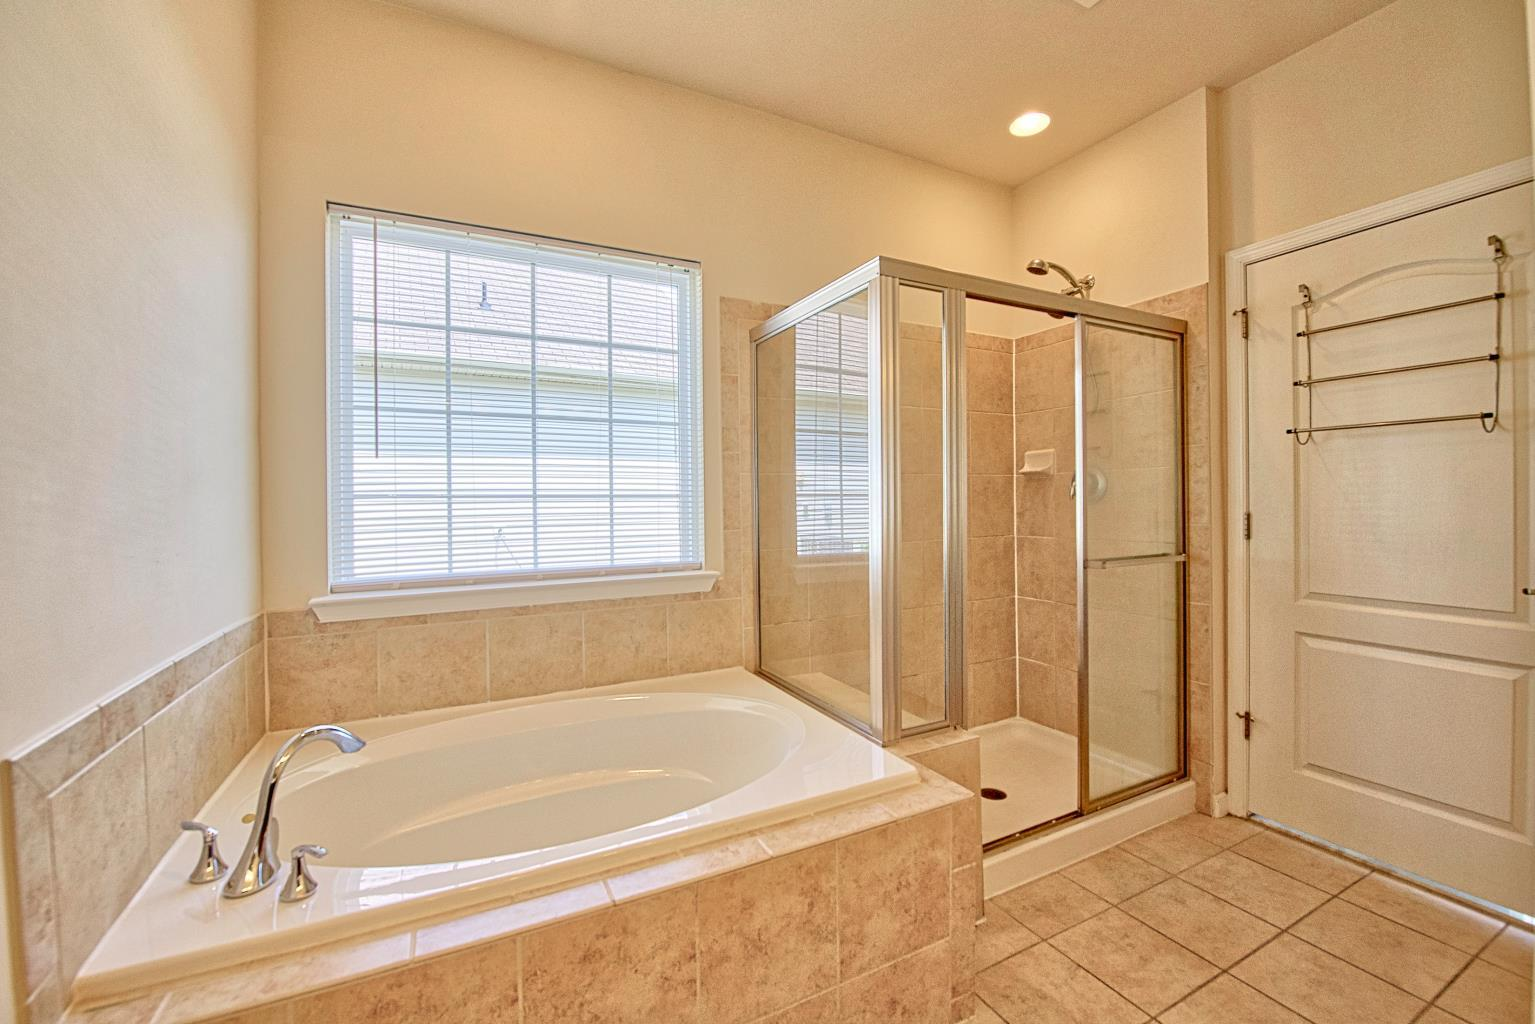 Luxurious Bathroom at 11194 Commanders Lane in White Plains, in Heritage at St Charles - Another beautiful home for sale by Marie Lally, Your Southern Maryland Realtor!